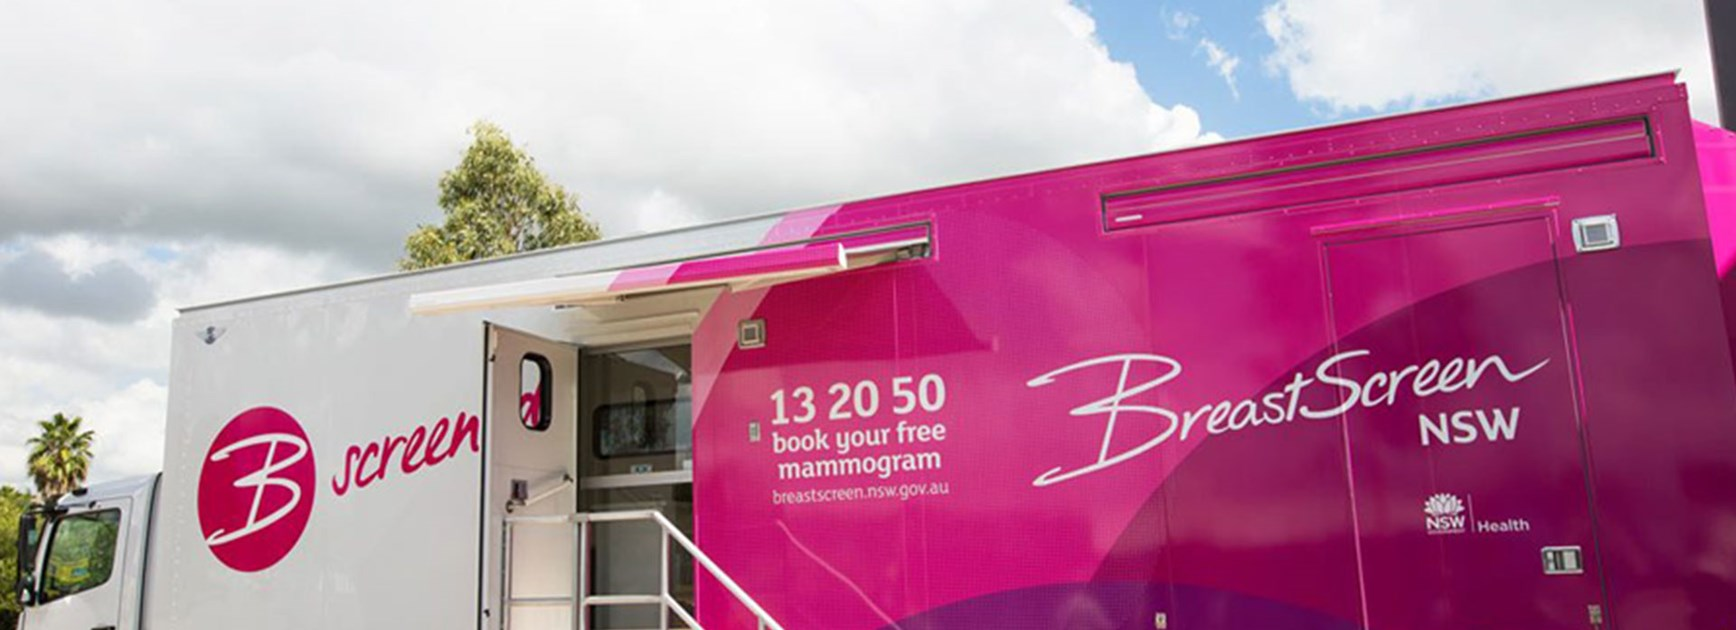 BreastScreen NSW truck to be based at Belmore